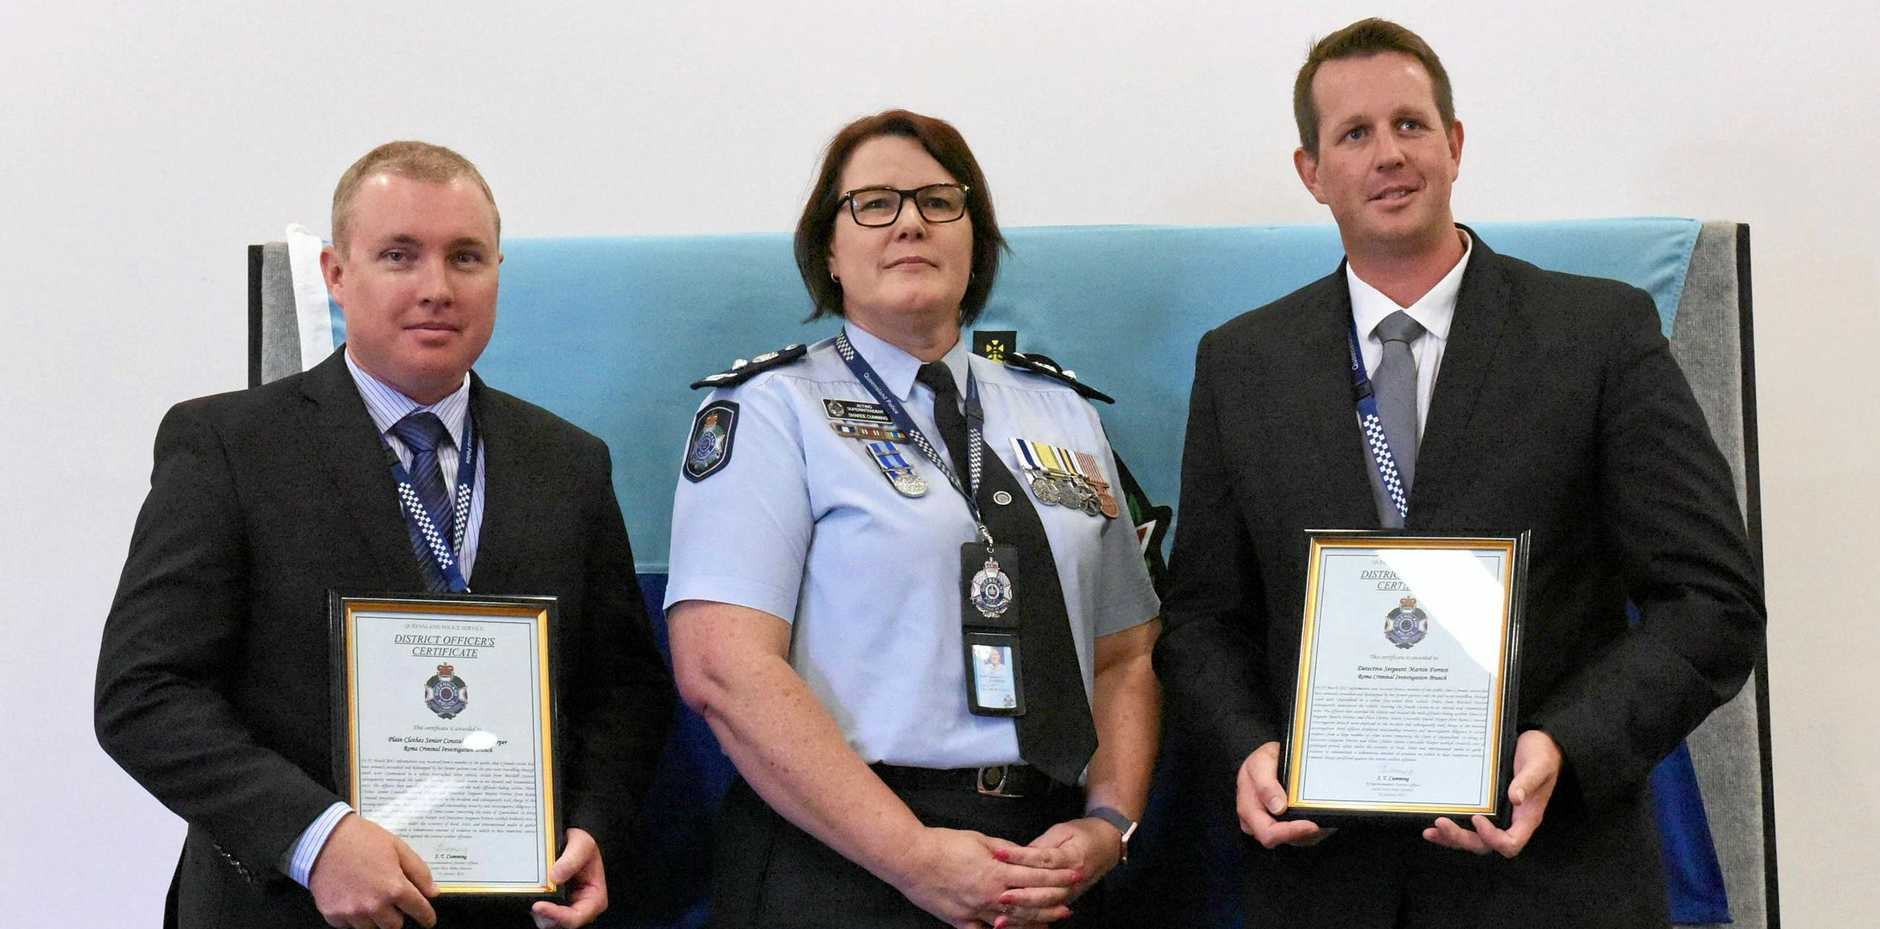 Detective Sergeant Martin Forrest and Detective Senior Constable David Harper receive the officer's certificate.